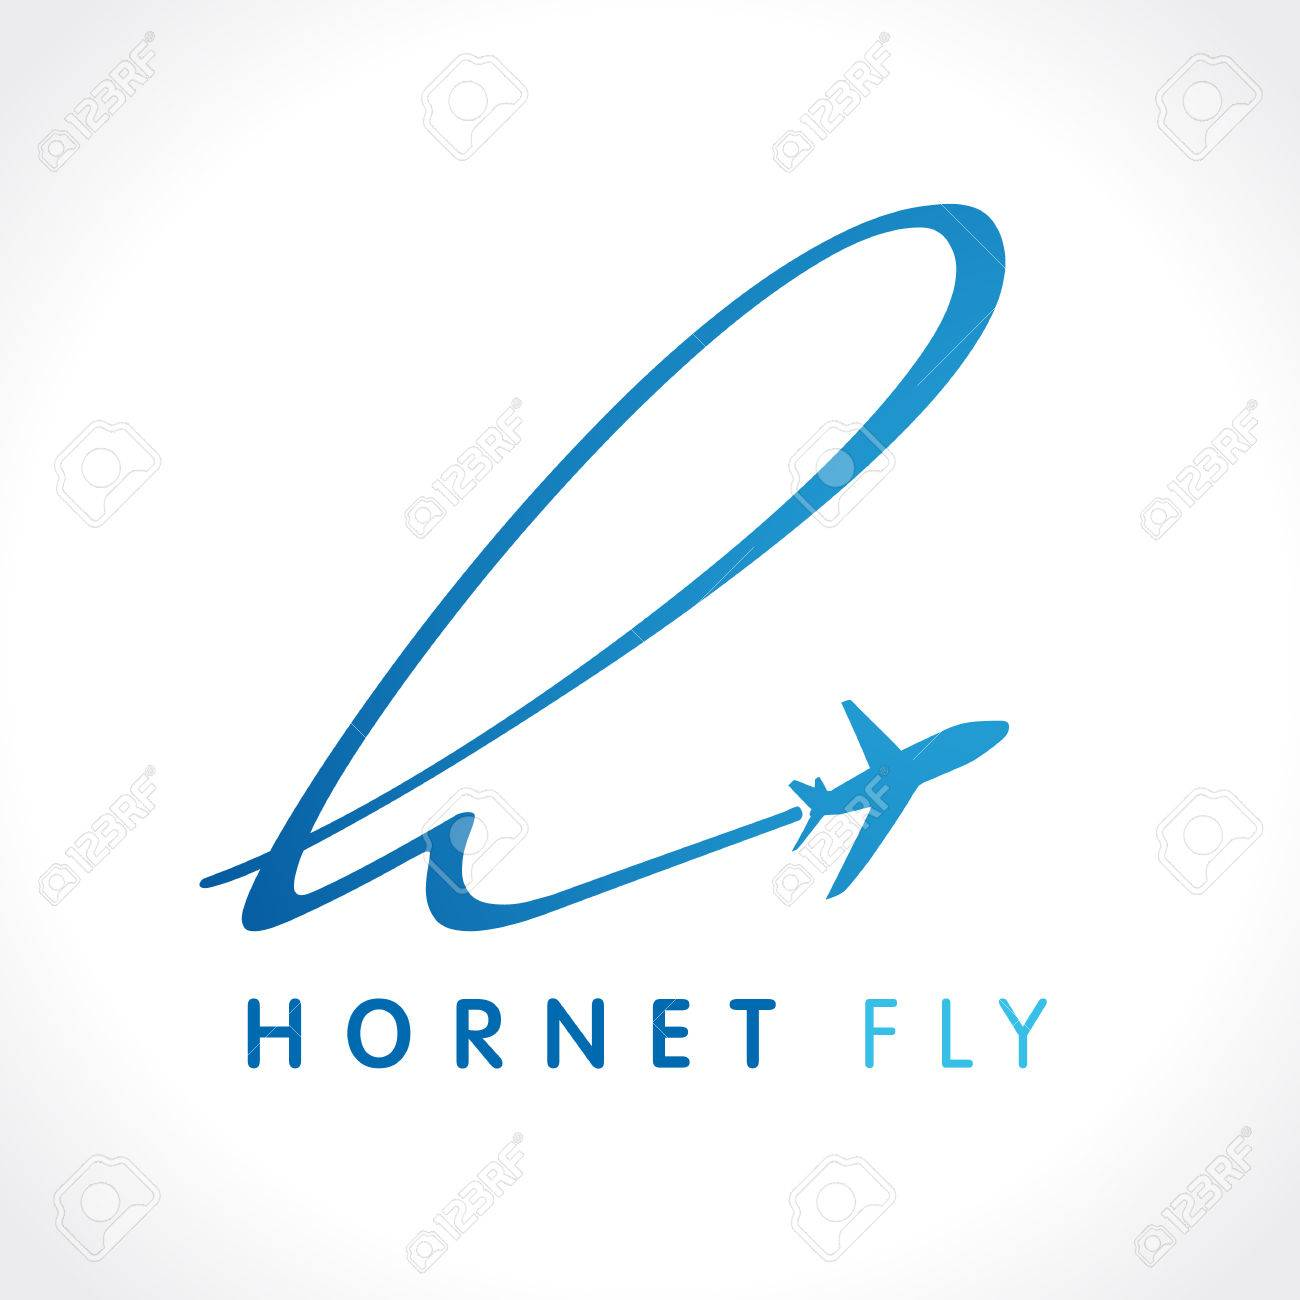 H hornet travel company logo airline business travel logo design h hornet travel company logo airline business travel logo design with letter thecheapjerseys Image collections